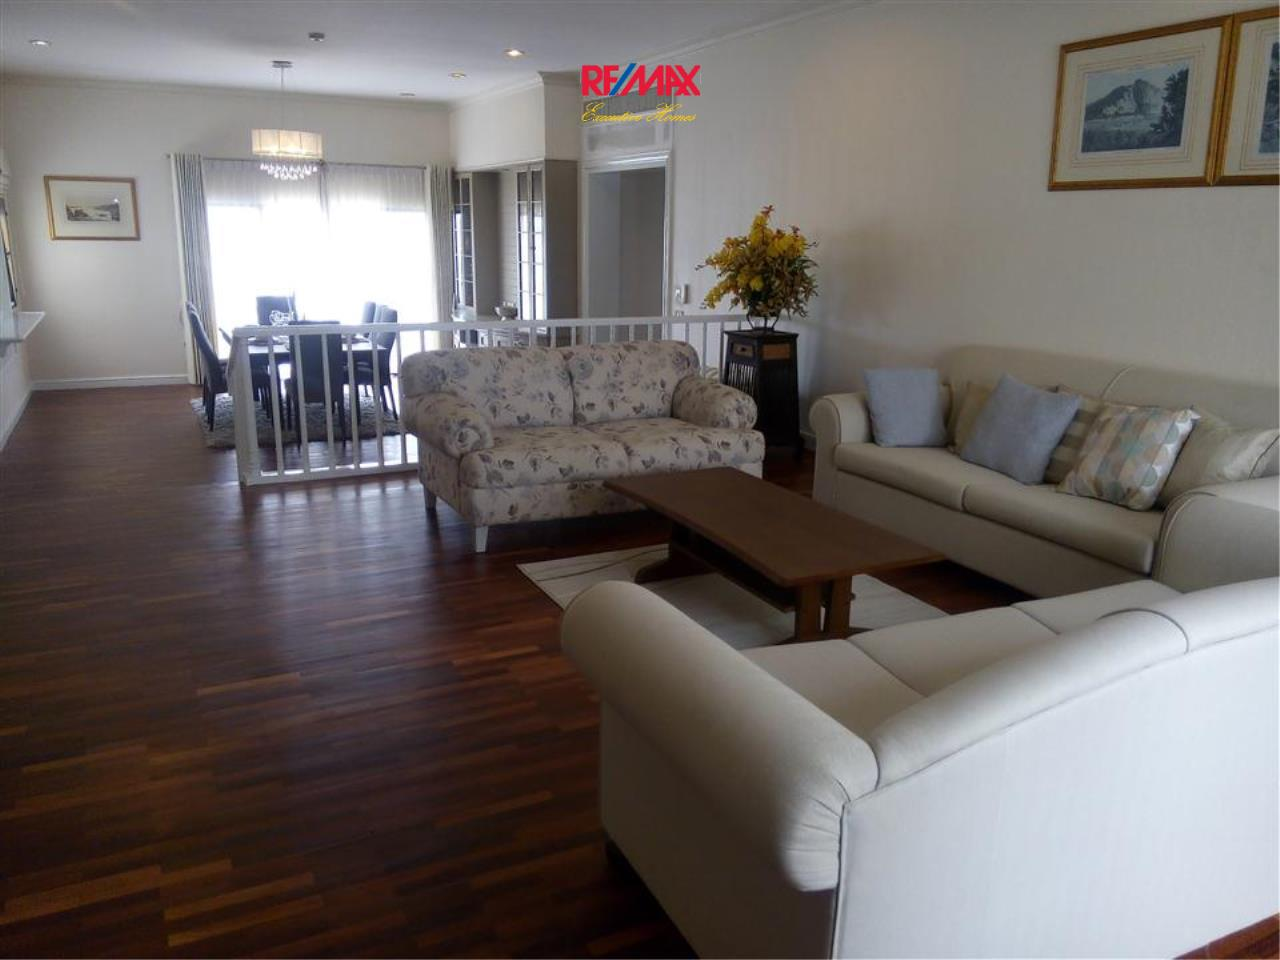 RE/MAX Executive Homes Agency's Nice 3 Bedroom for Rent Sathorn Crest 51